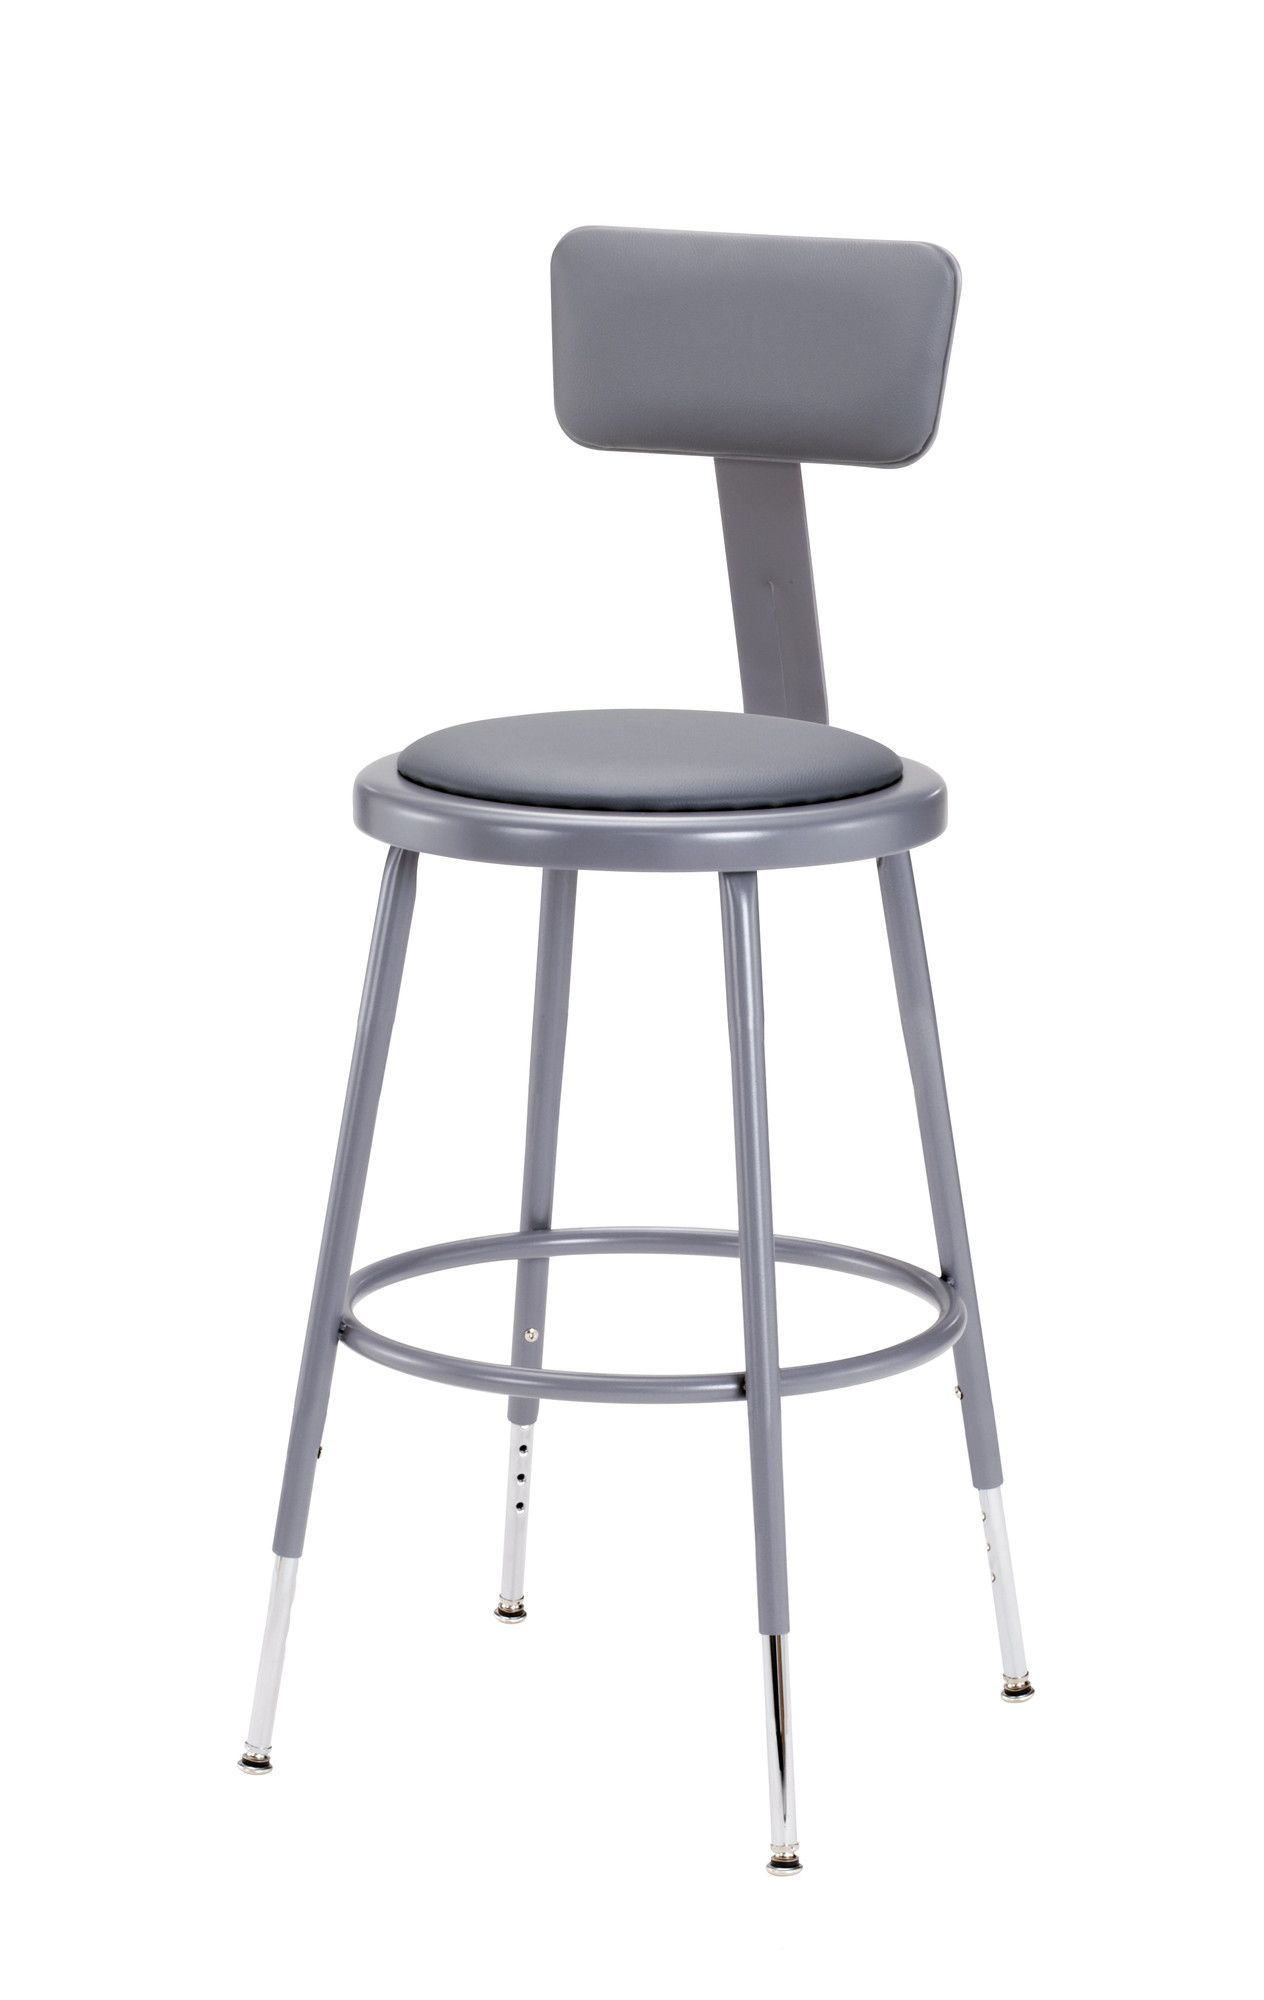 Height Adjustable Stool with Adjustable Backrest  sc 1 st  Pinterest & Height Adjustable Stool with Adjustable Backrest | Office ... islam-shia.org